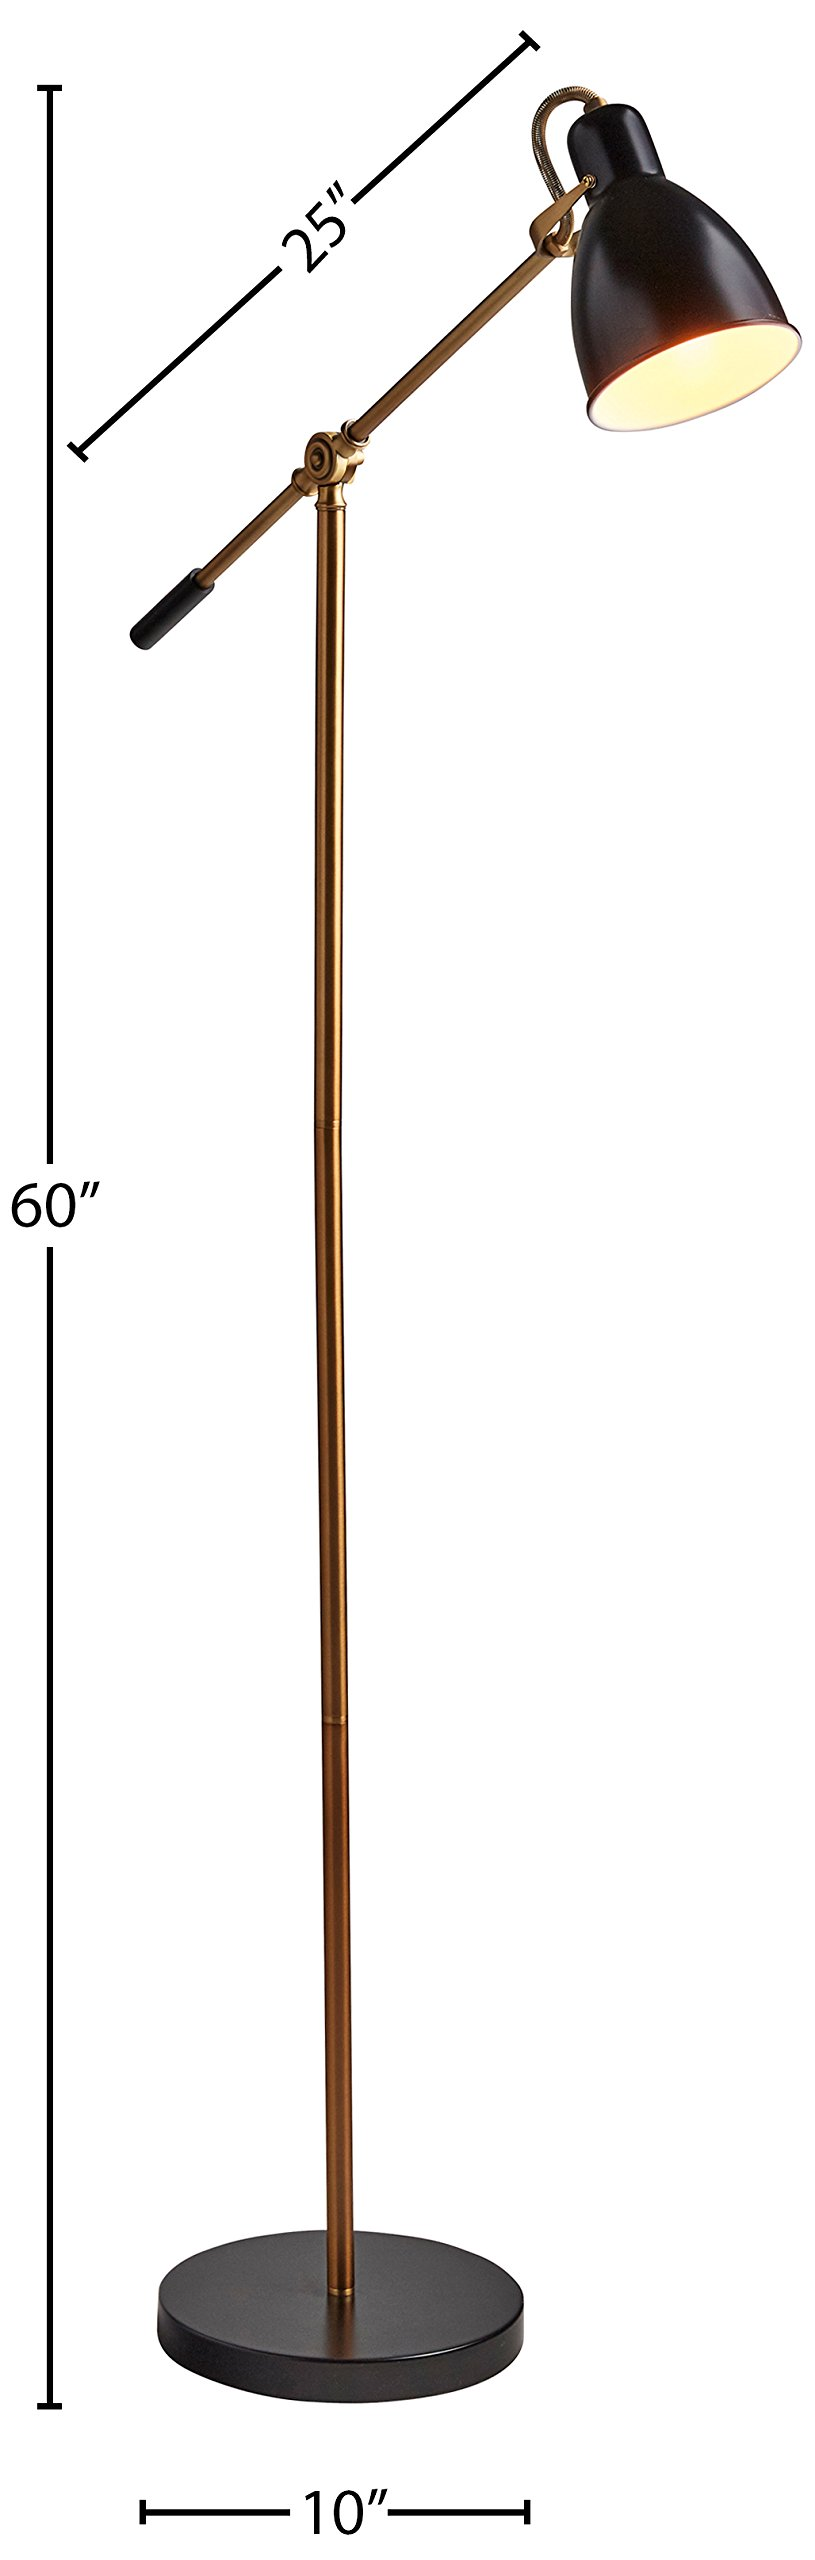 Rivet Caden Adjustable Task Floor Lamp with LED Bulb, 60''H, Black and Brass by Rivet (Image #5)